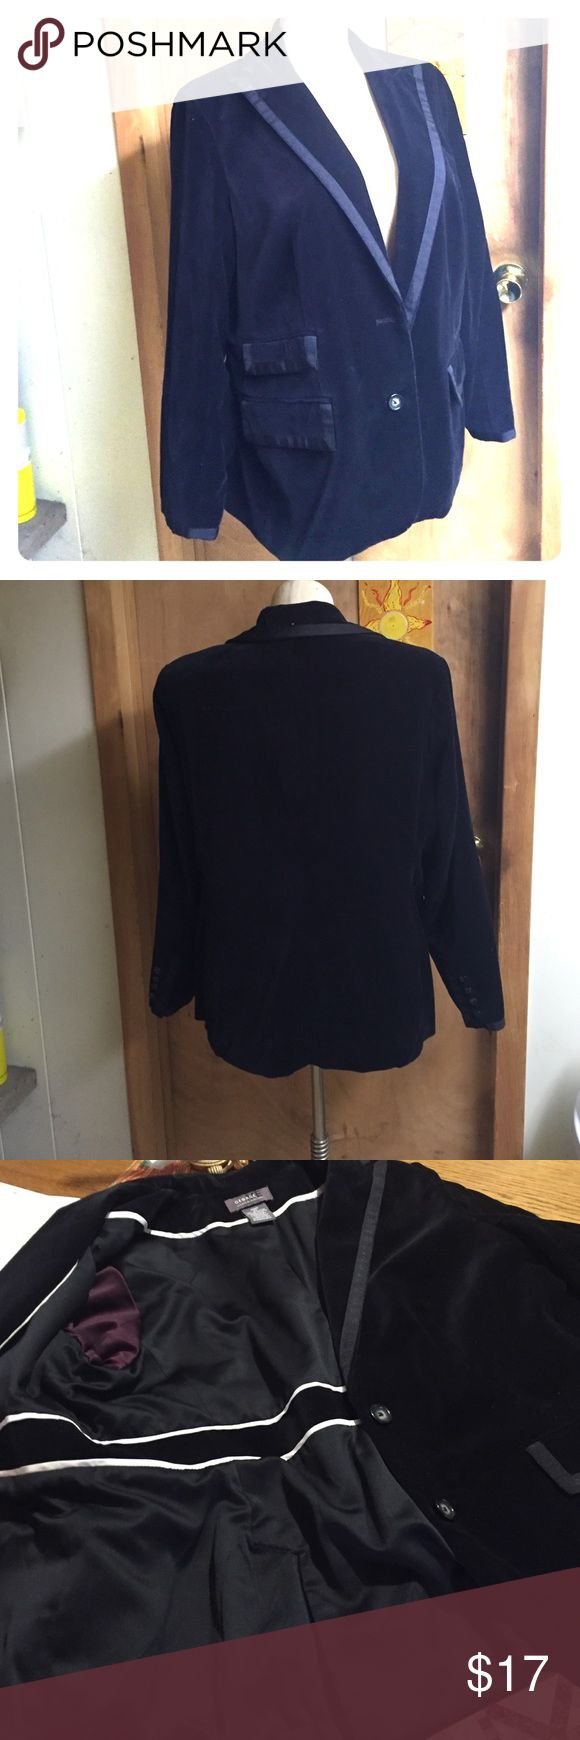 Vintage Velvet Tuxedo Jacket 🎩. Lots of details Vintage Velvet Tuxedo Jacket. Very detailed great addition to any Women's Closet. 🎩. Well taken care of, dressy no pockets. Looks great with Jeans. George Designs by Mark Eisen Jackets & Coats Blazers